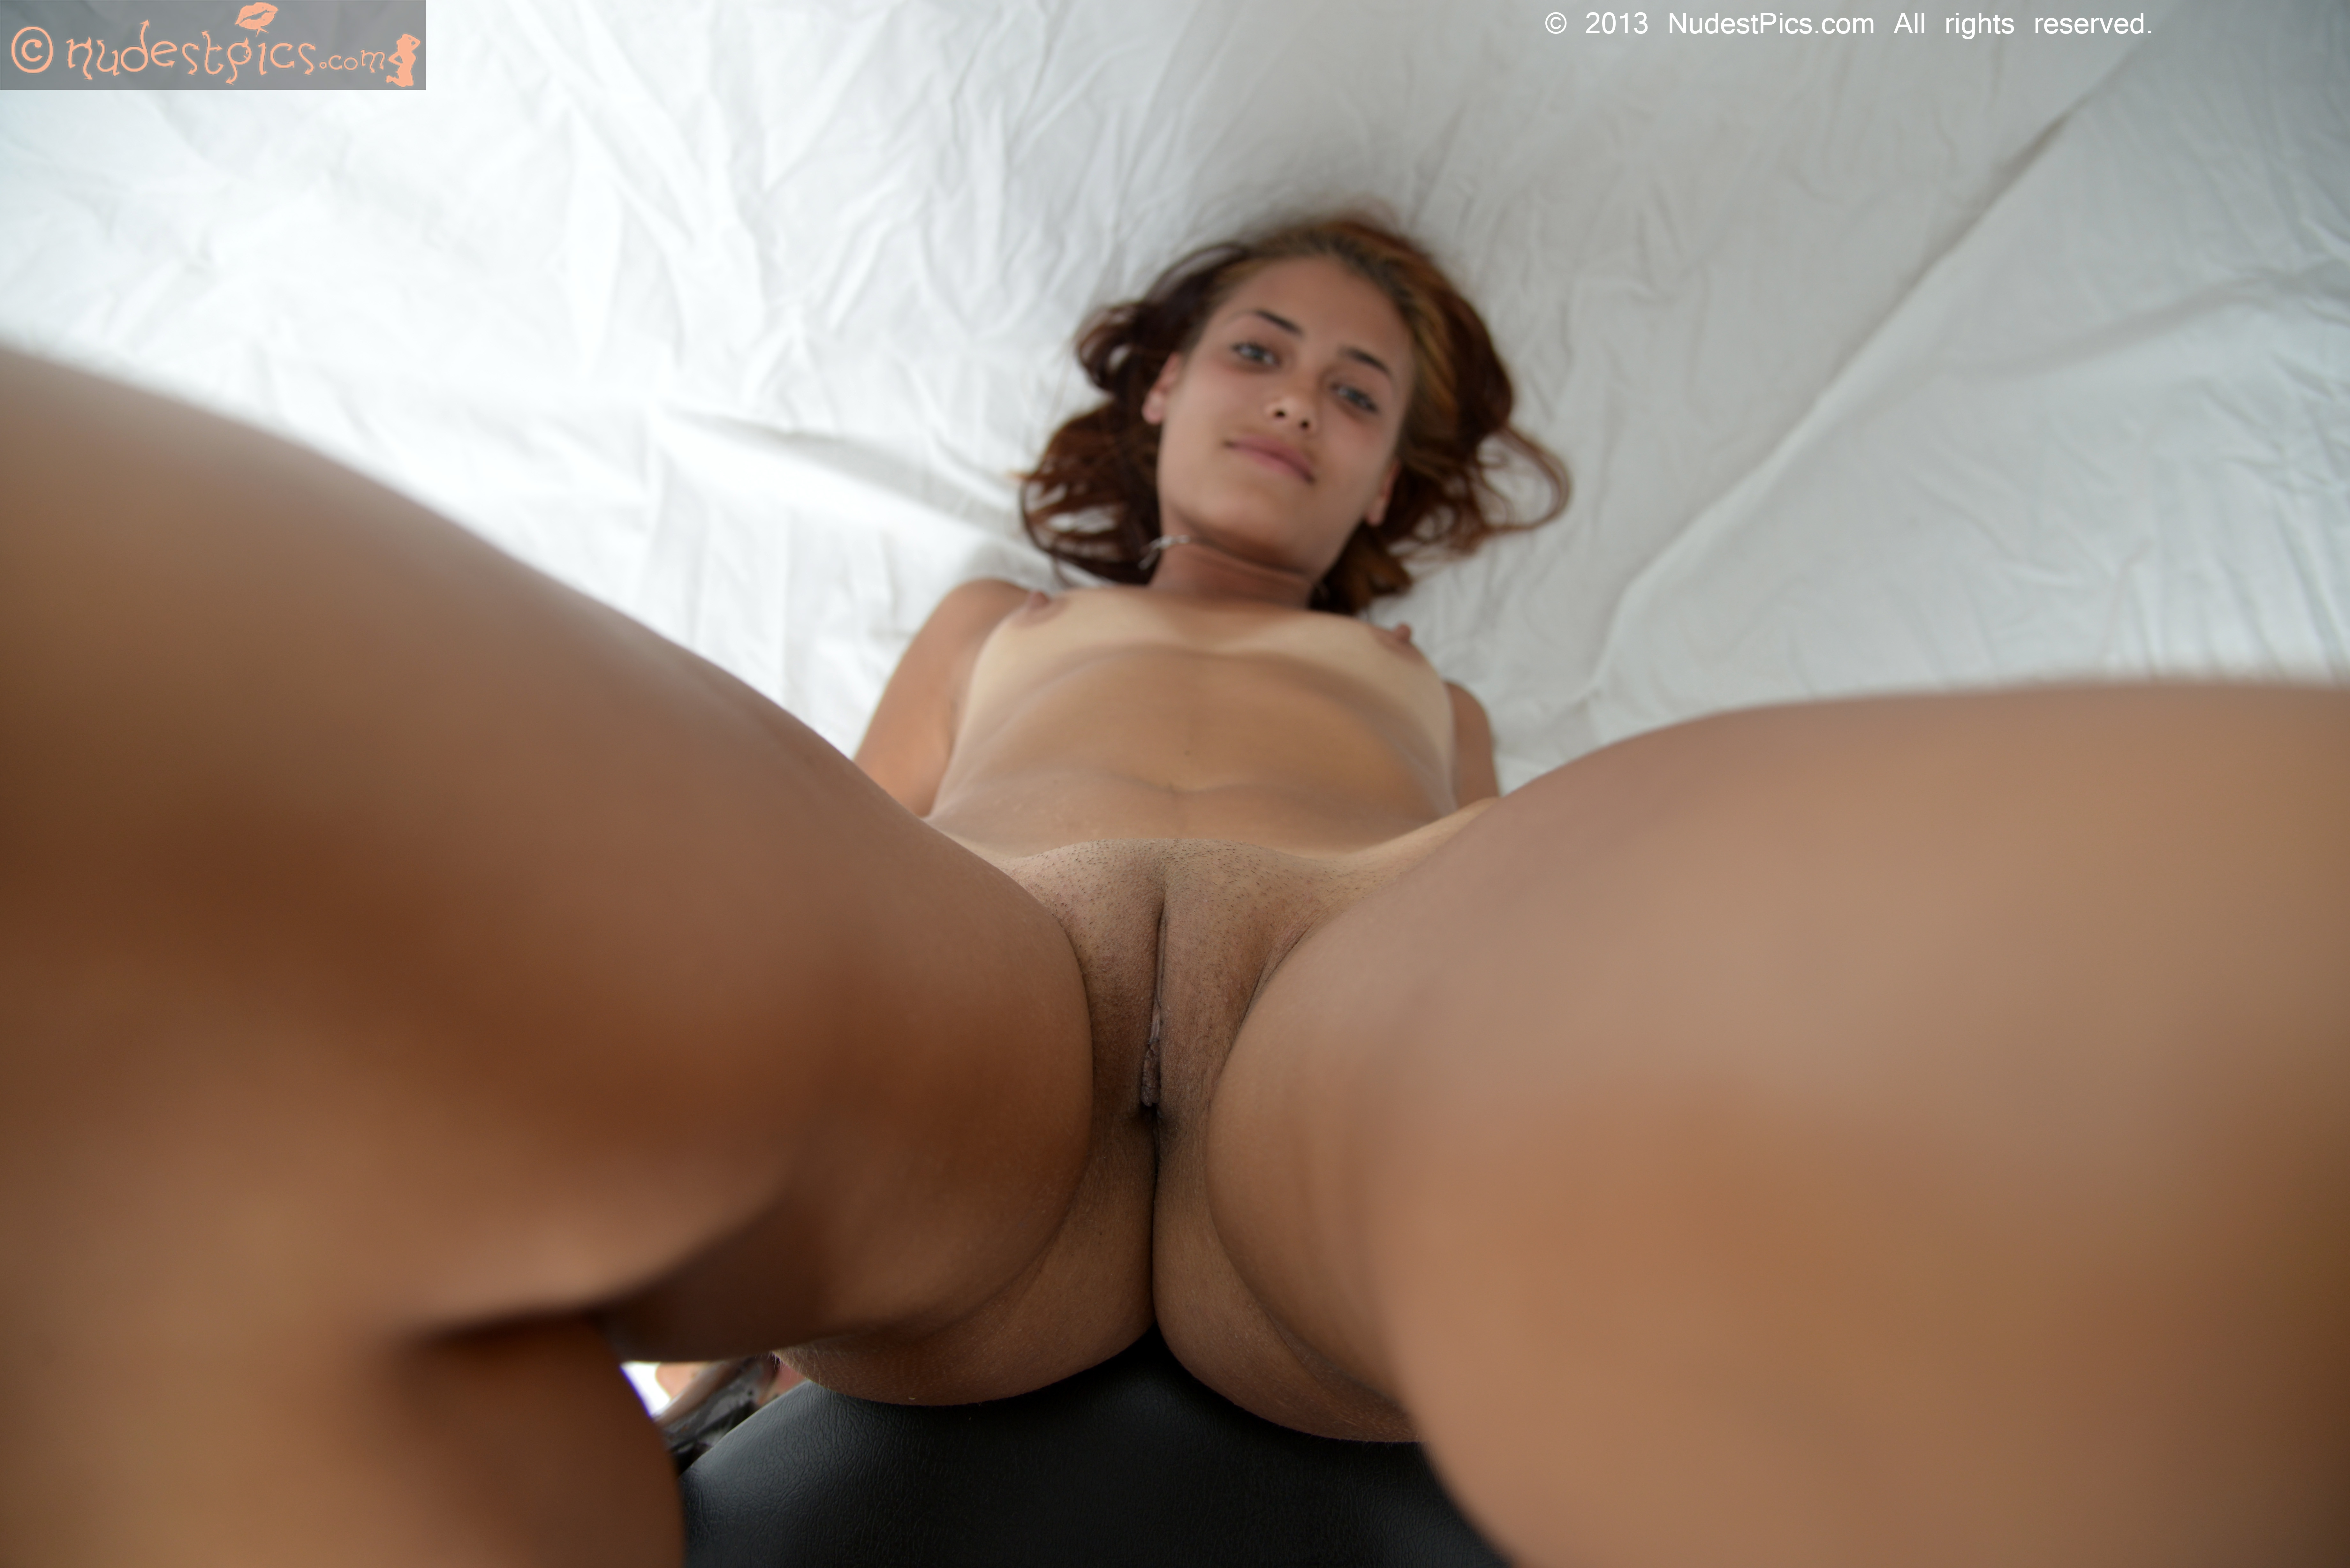 flat chested slut elaine meadors spreads her ass with toys before